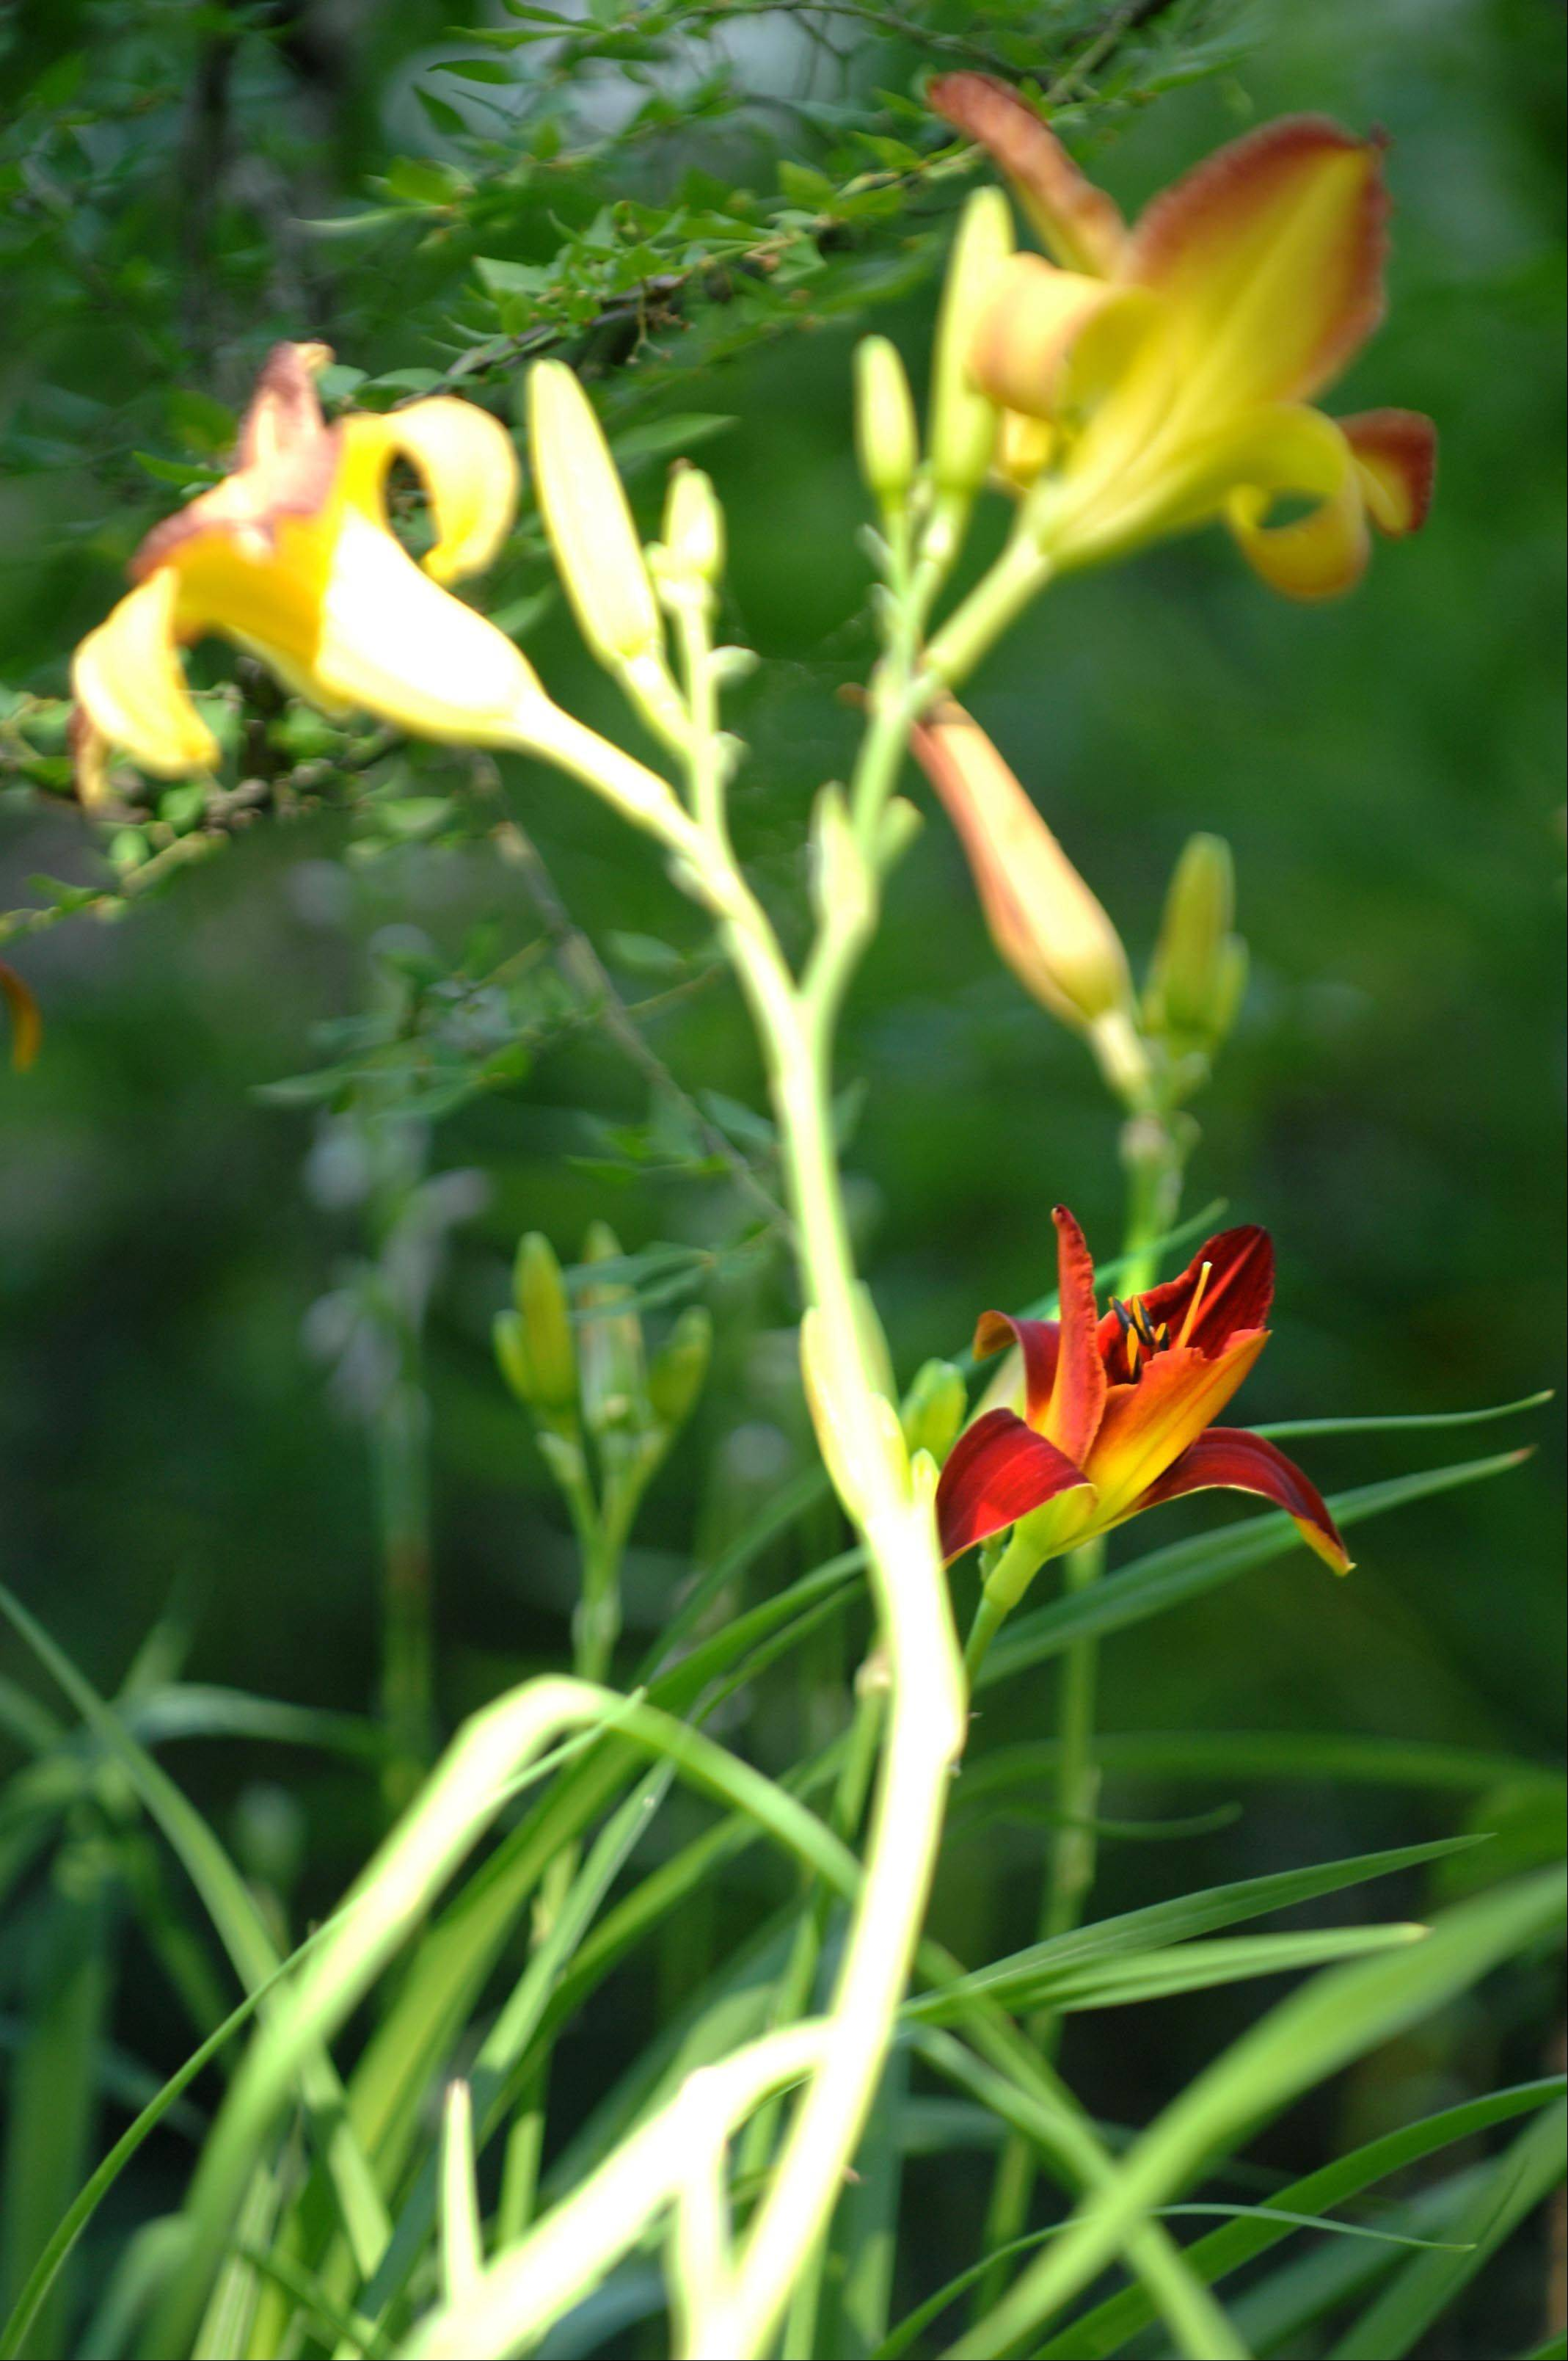 And what's a garden without day lilies? This is Sammy Russell Red at Private Pompousness, Poetry and Playfulness.